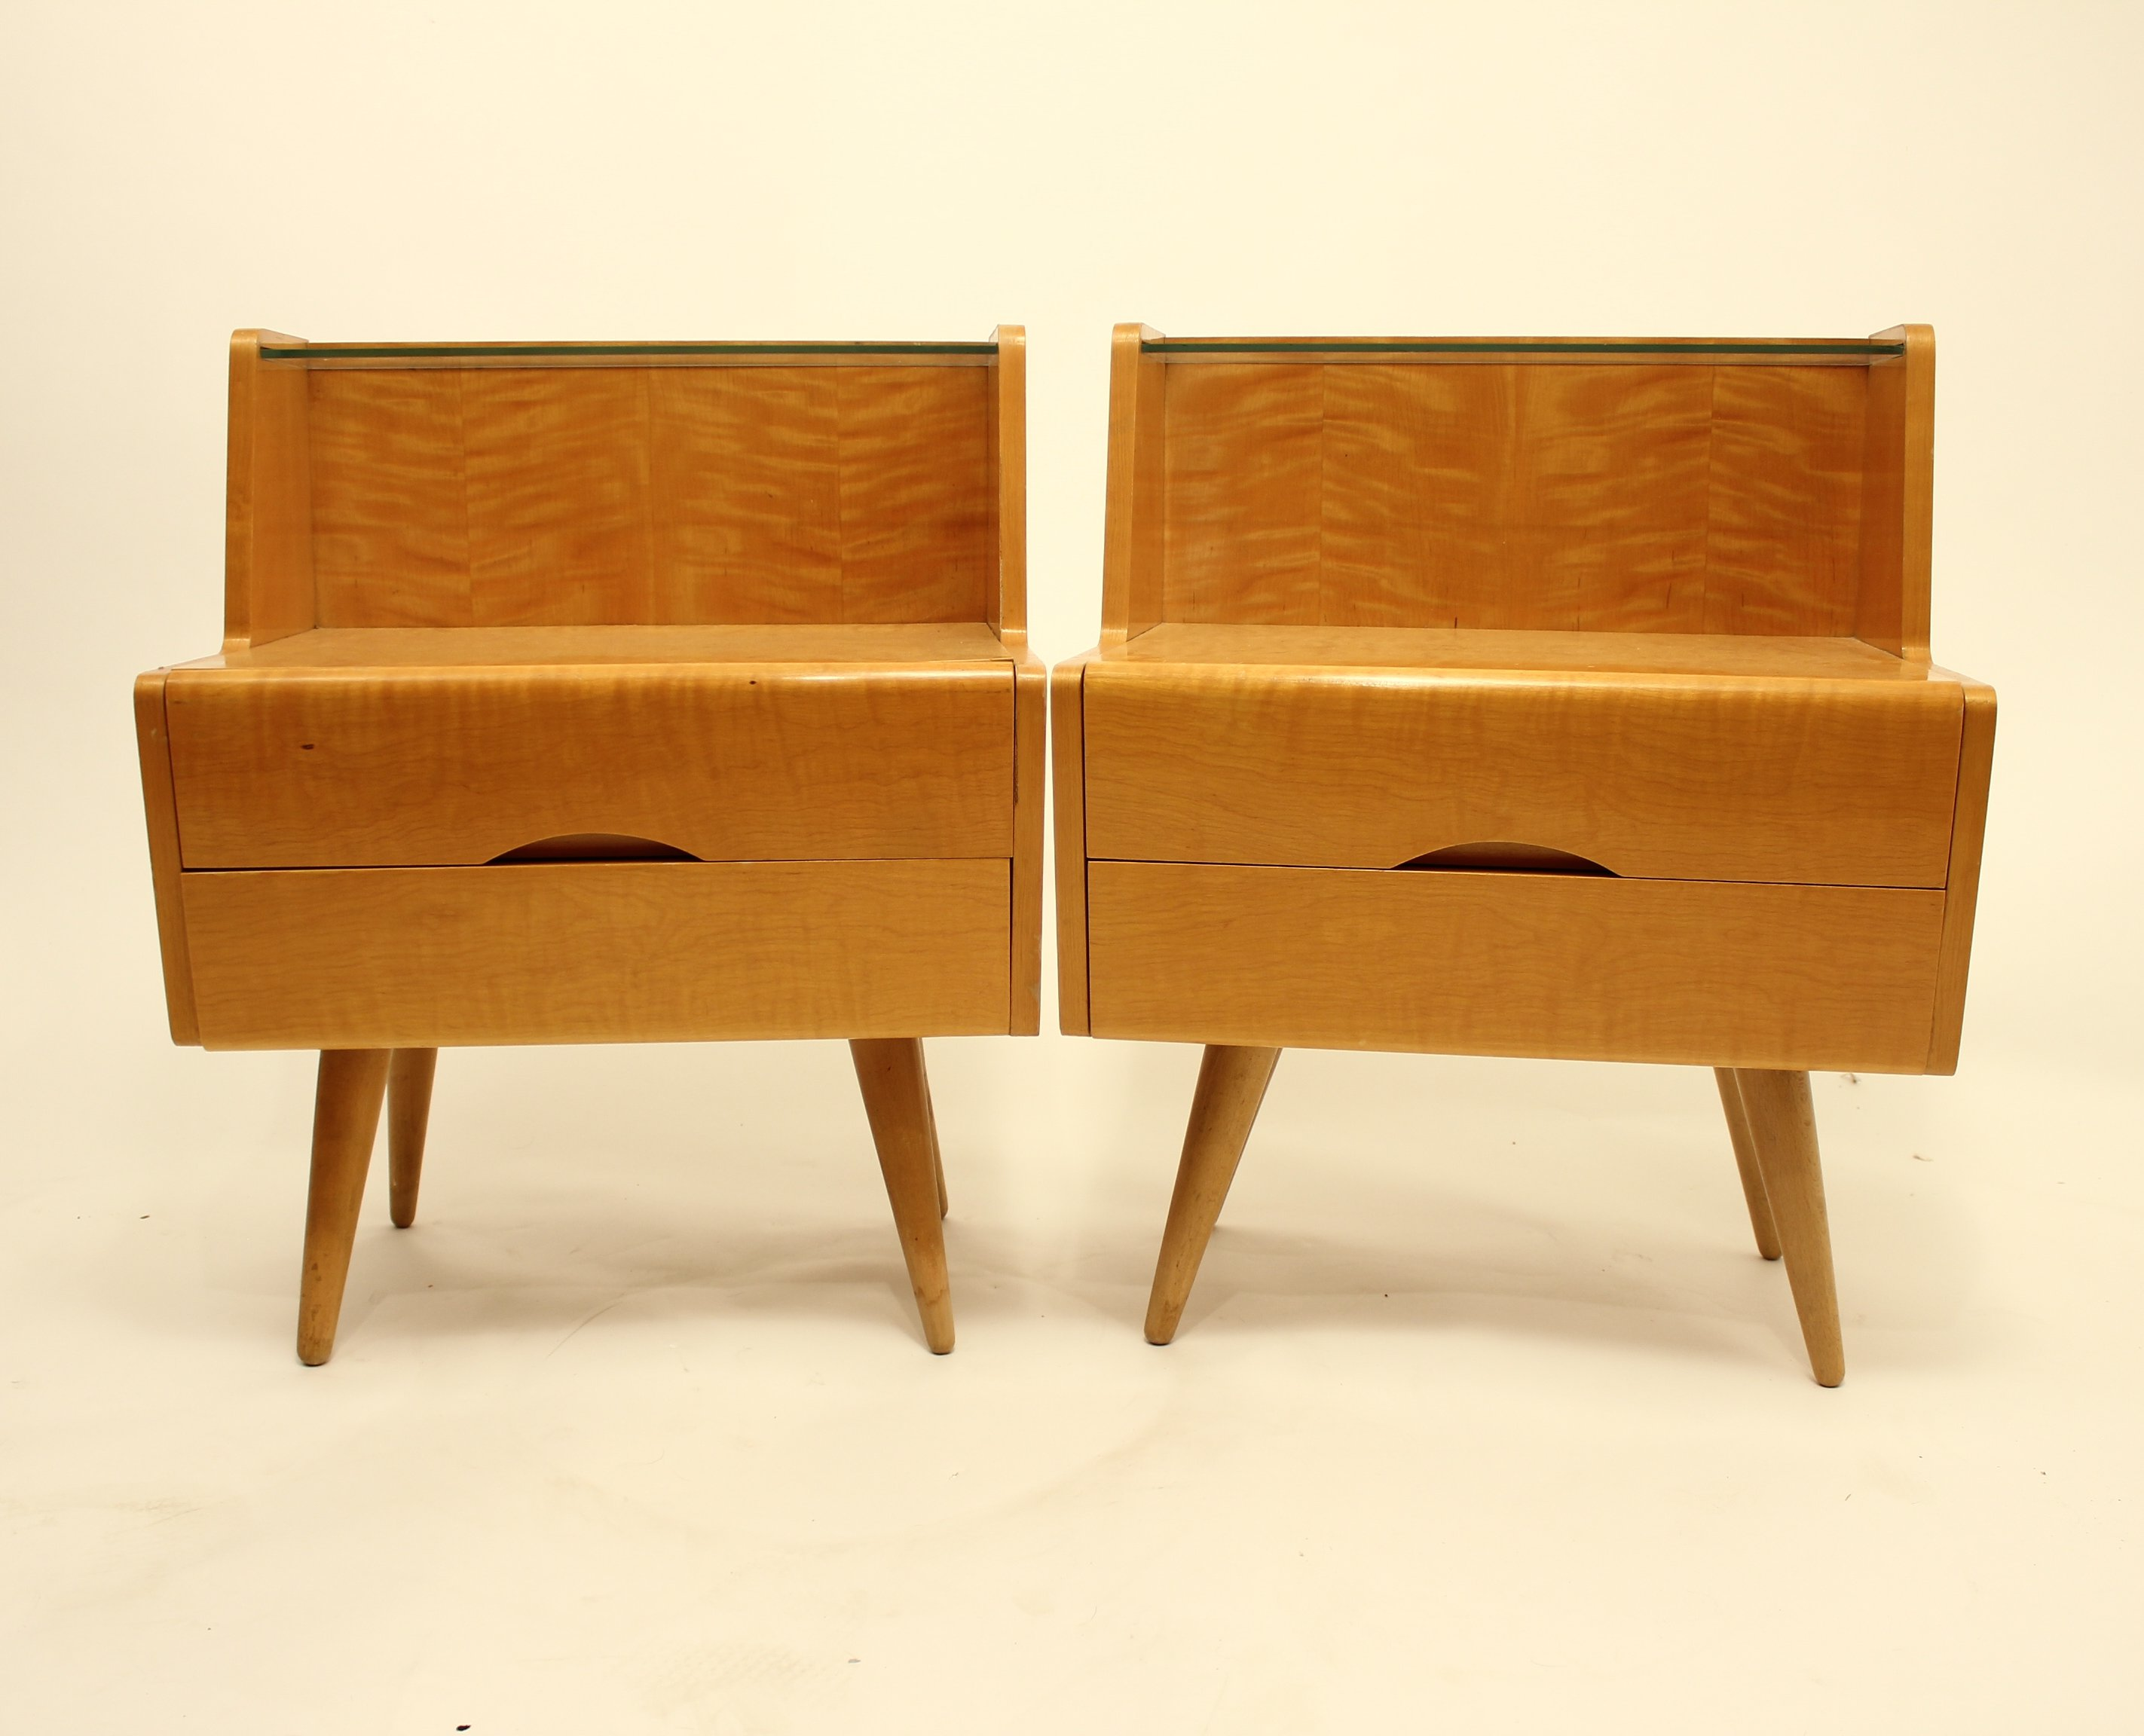 pair of bedside tables 1960s